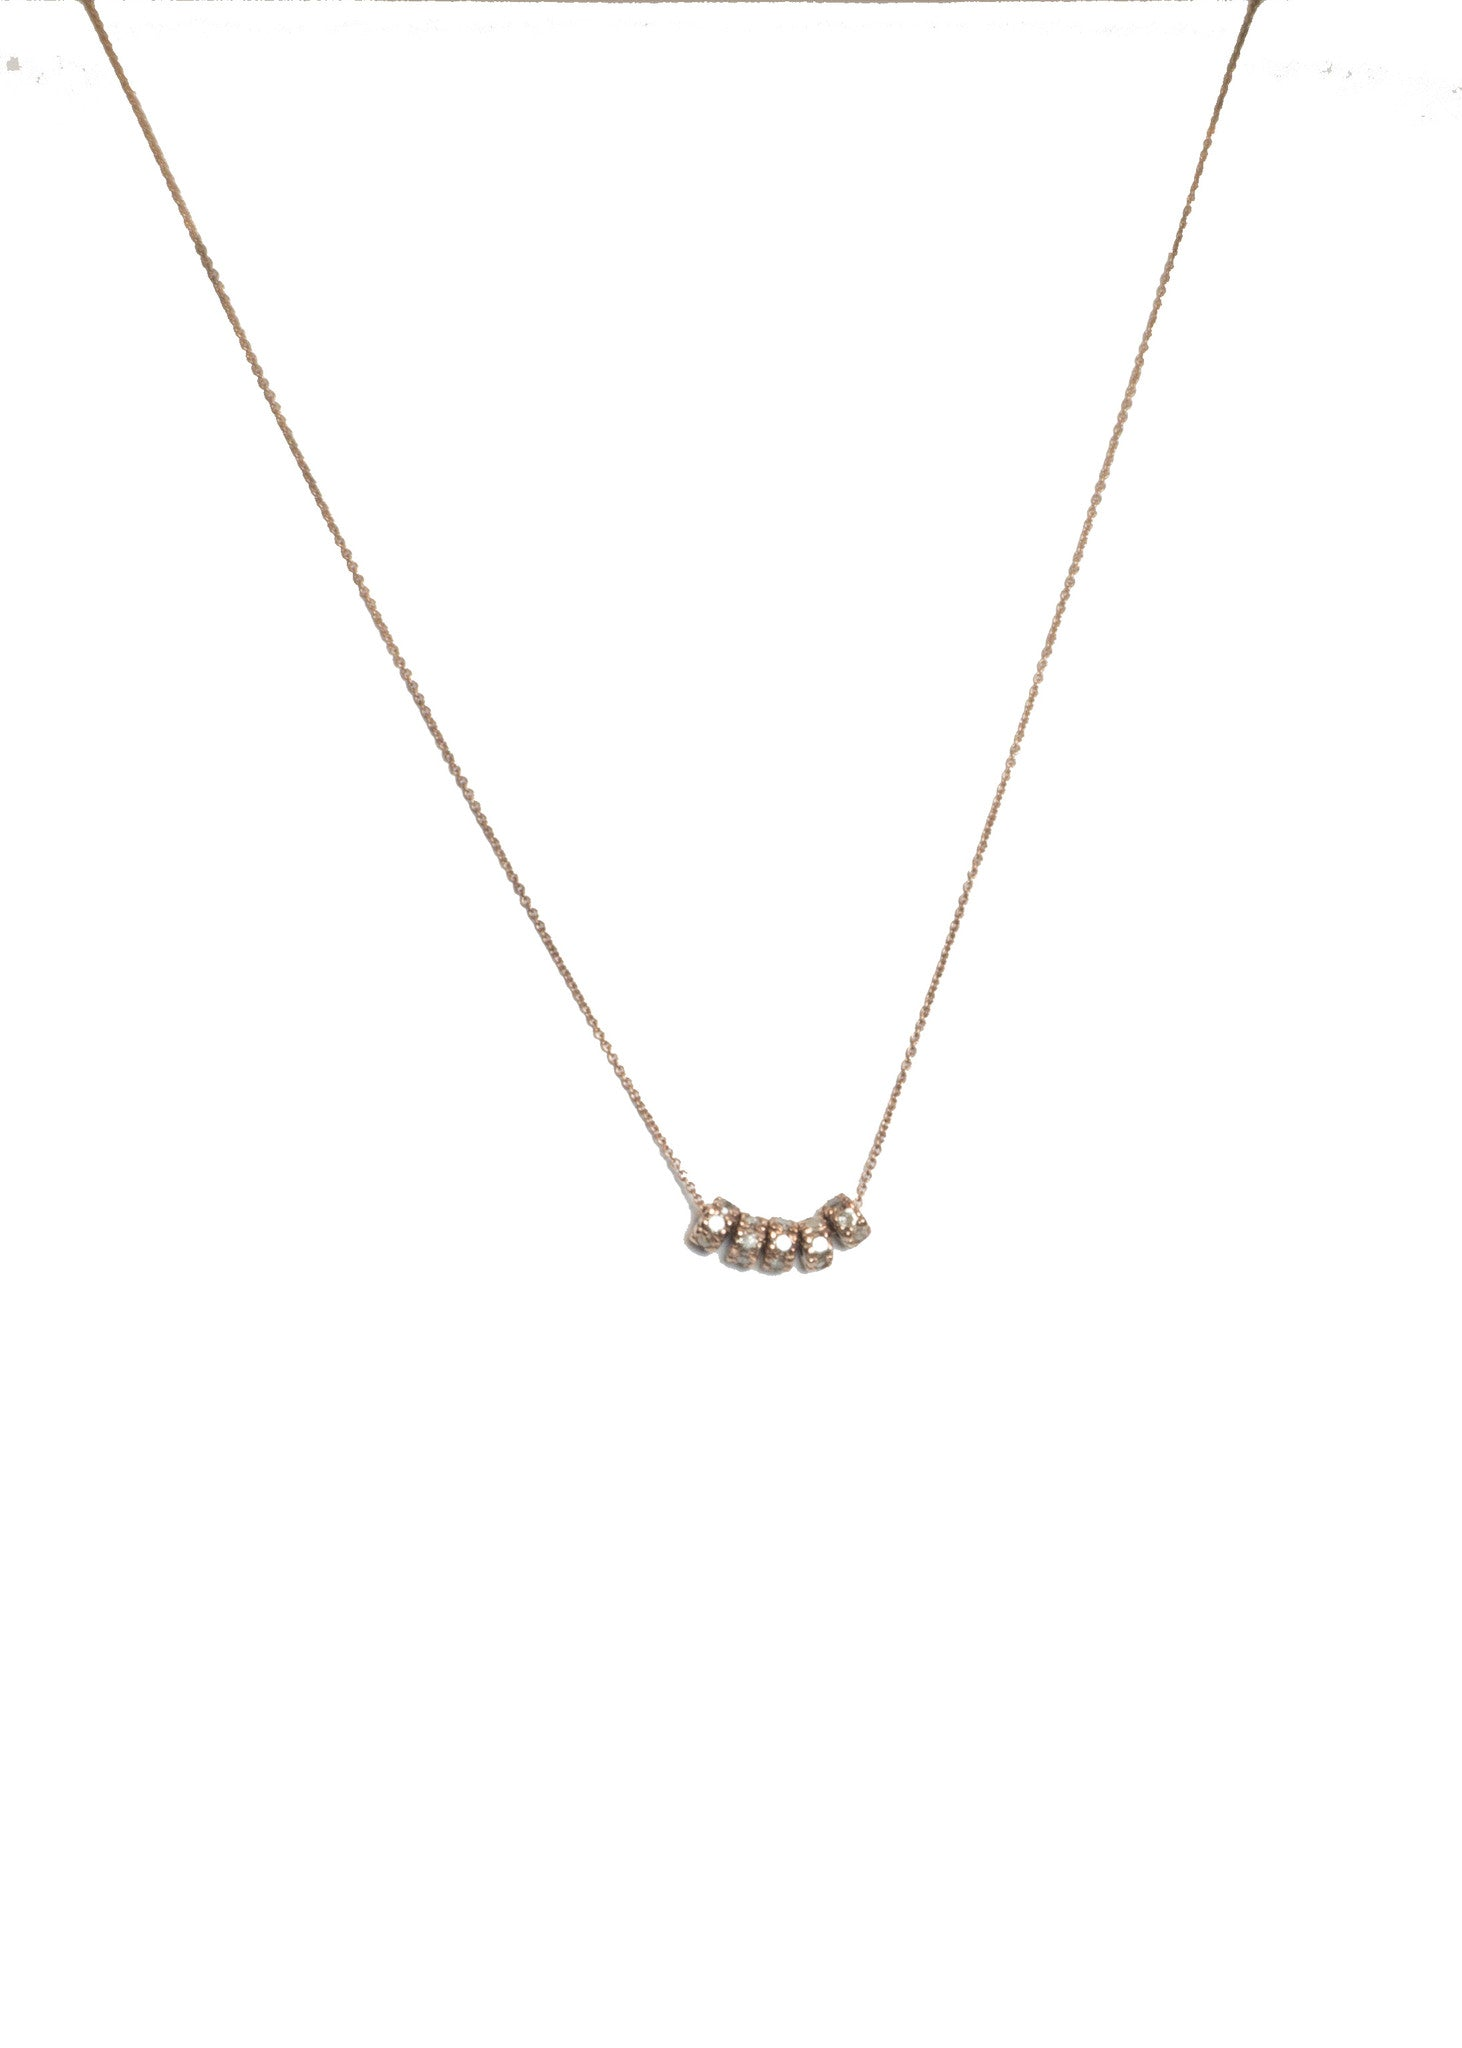 Lera Jewels 5 rose gold rondels on chain necklace